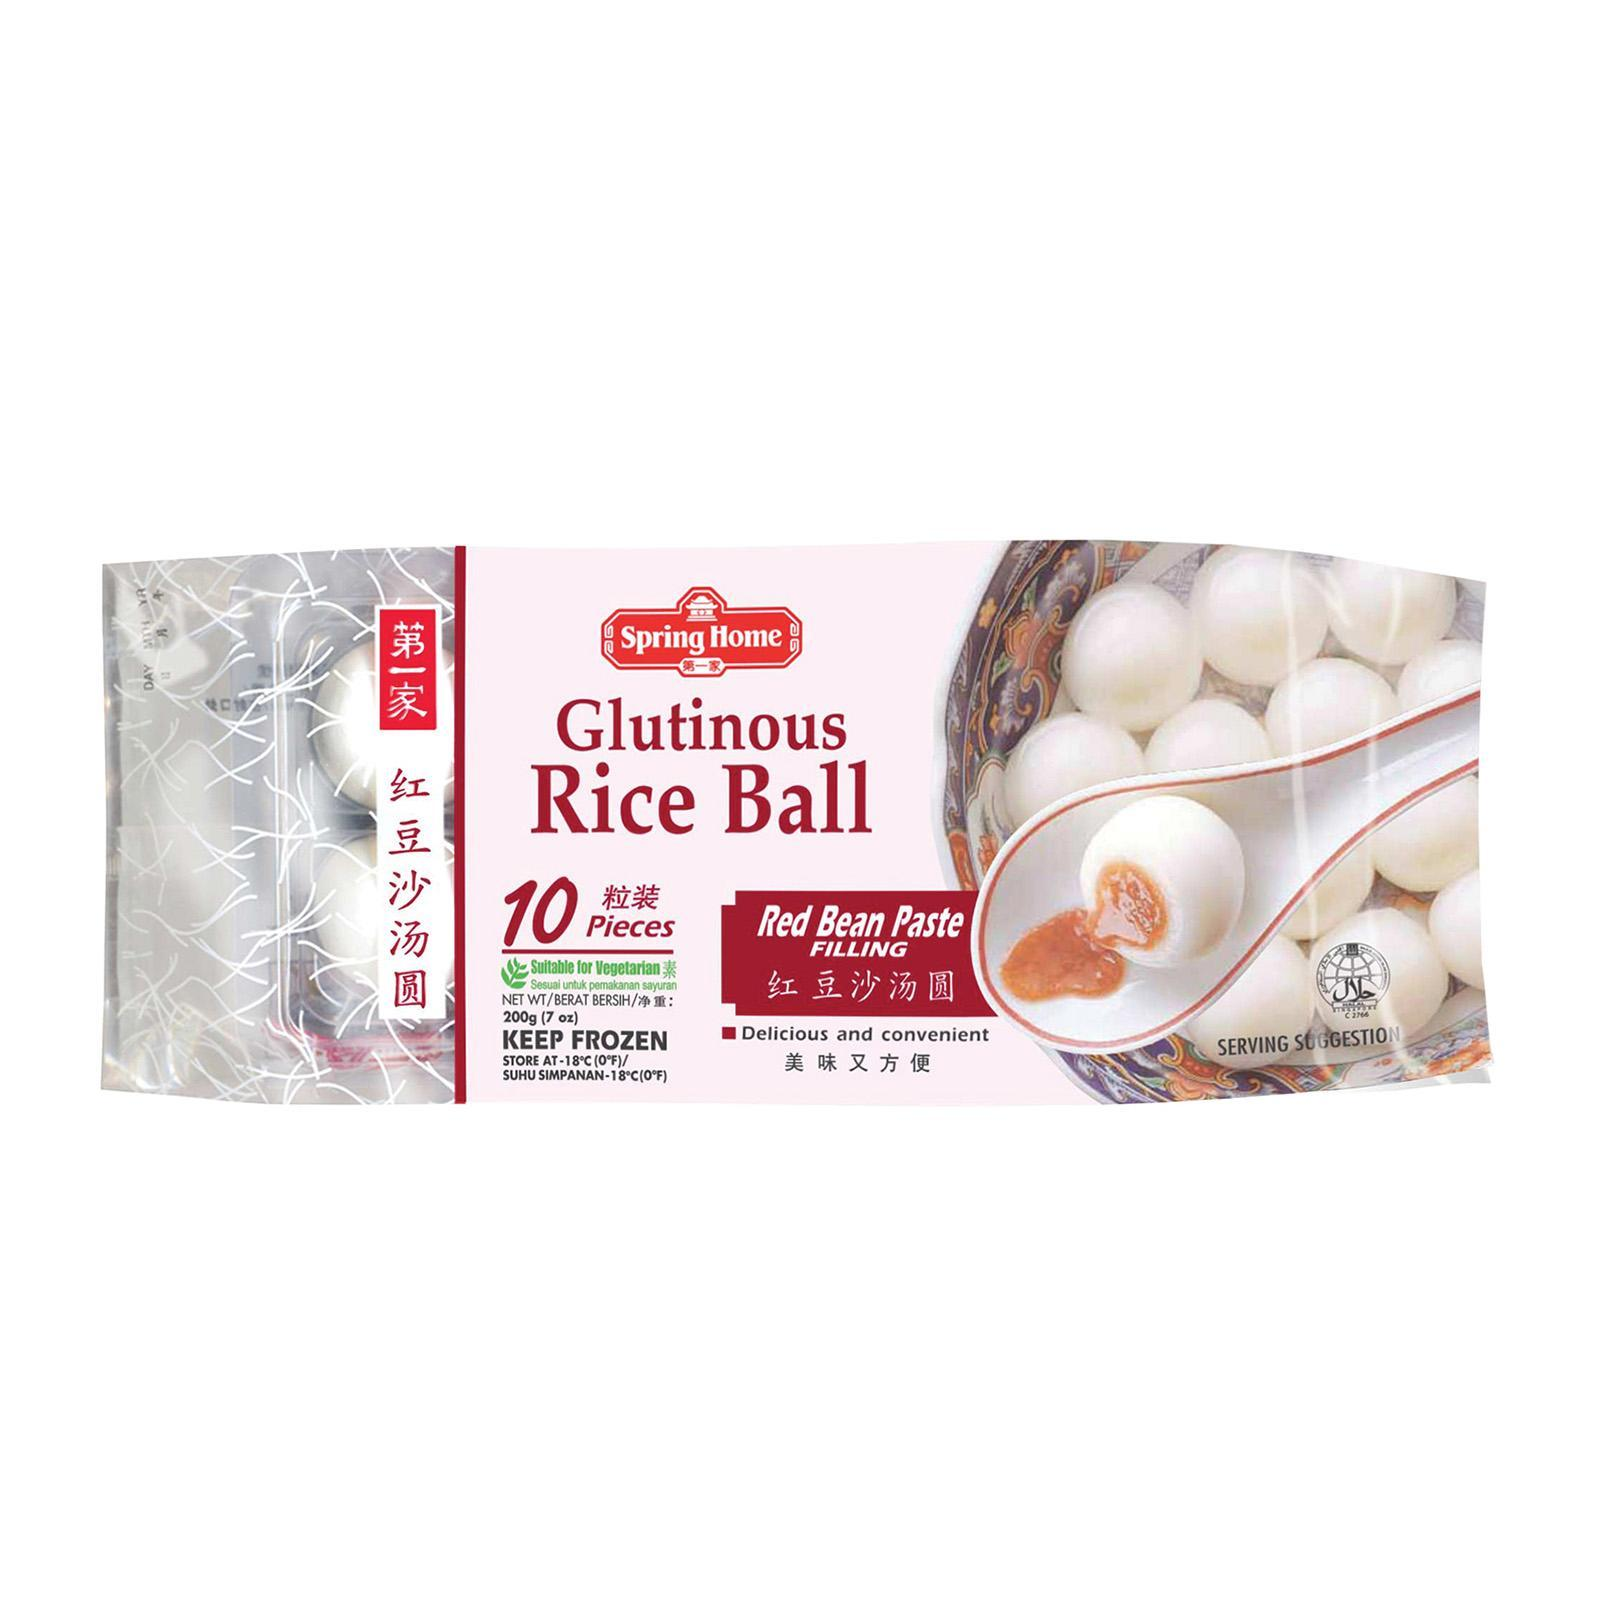 Spring Home Glutinous Rice Ball - Red Bean (10 Pcs) - Frozen By Redmart.